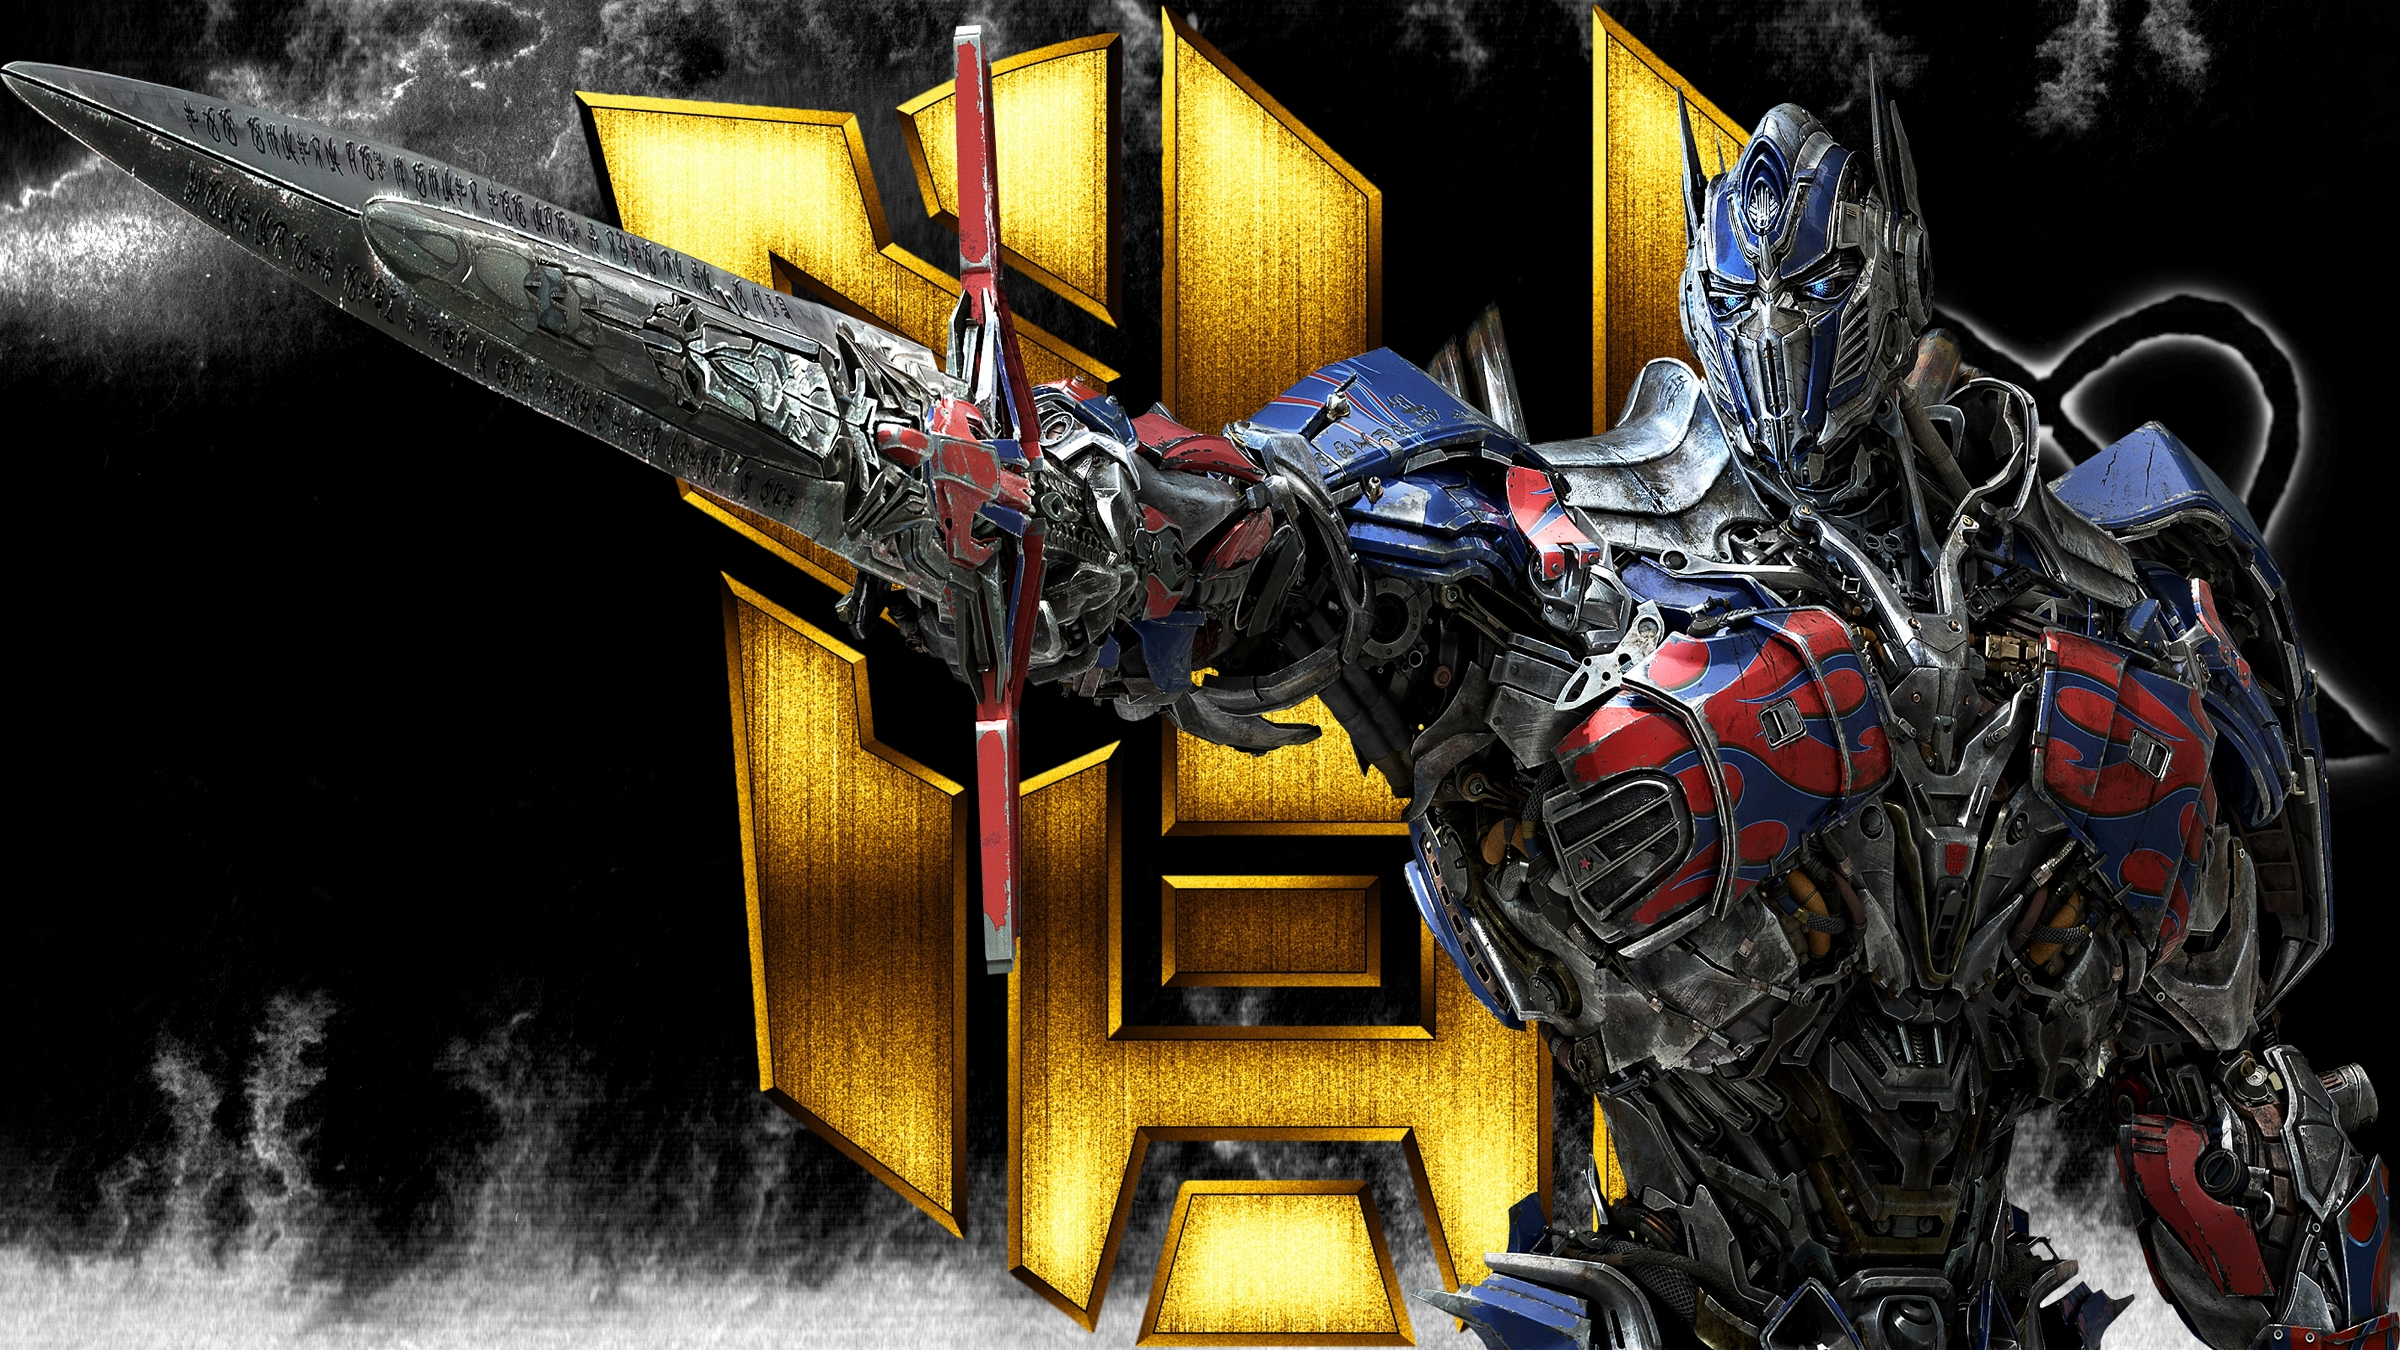 optimus prime wallpapers free download